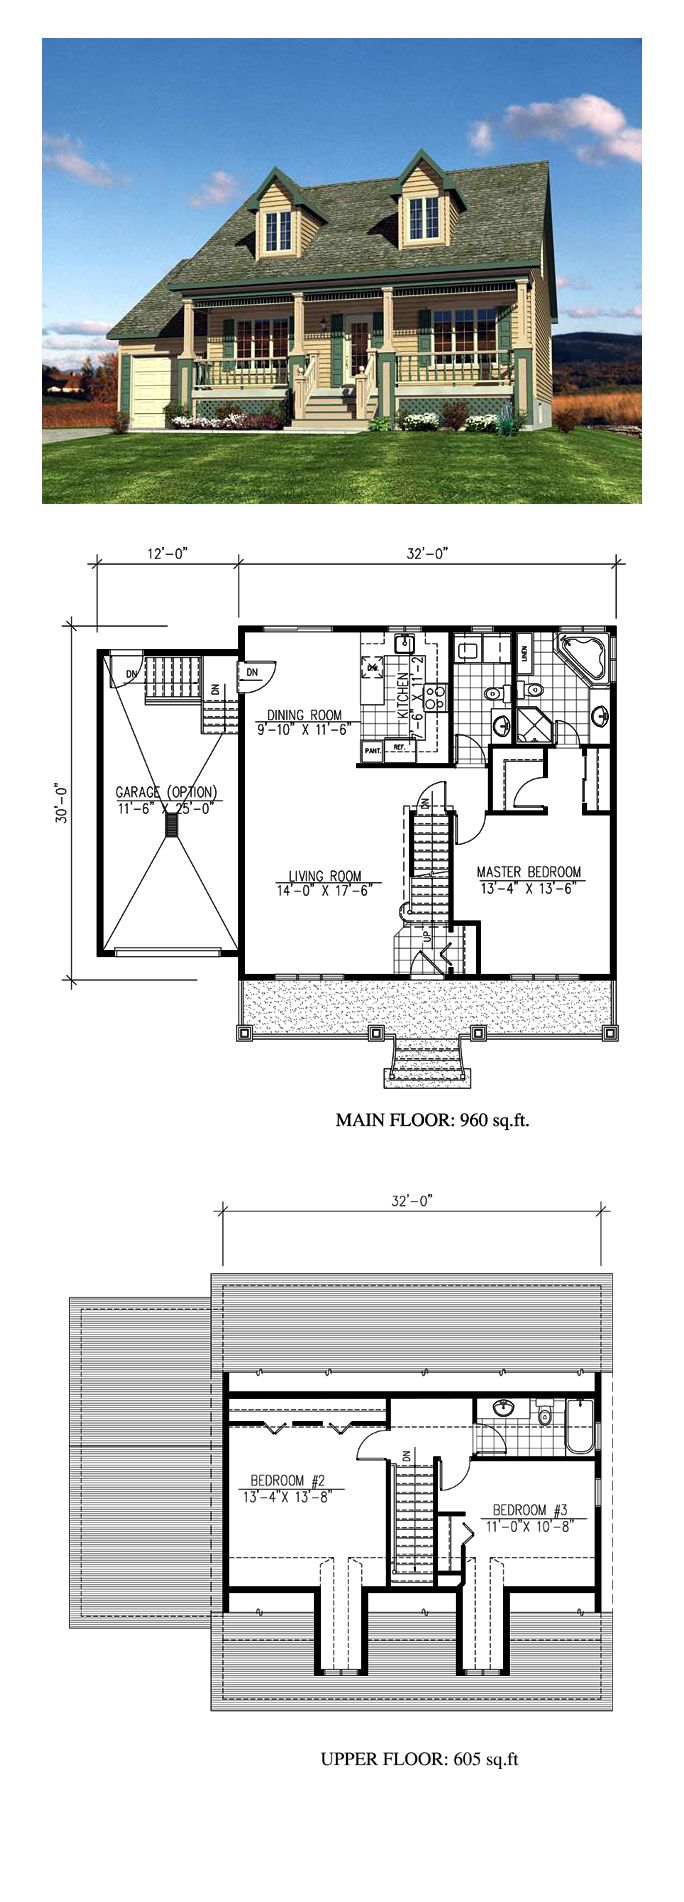 Best 25 cape cod houses ideas on pinterest cape cod for Cape cod floor plans